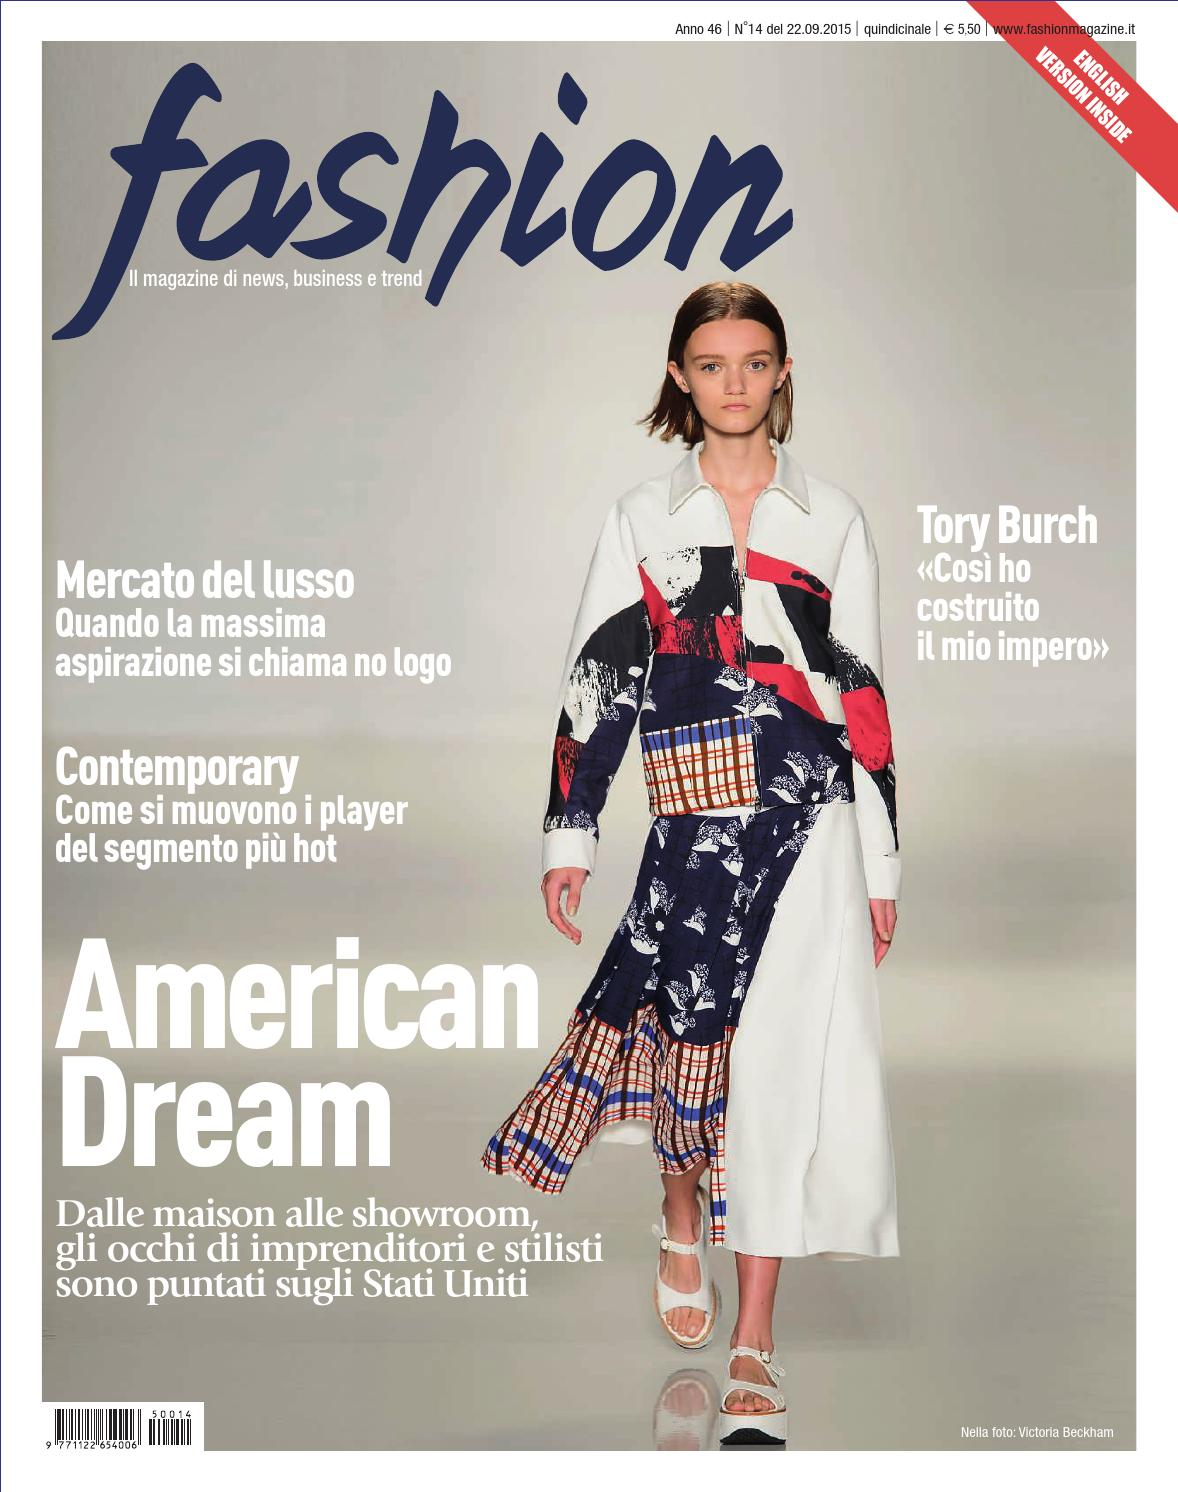 Fashion 14 2015 by Fashionmagazine - issuu dd1481525c1